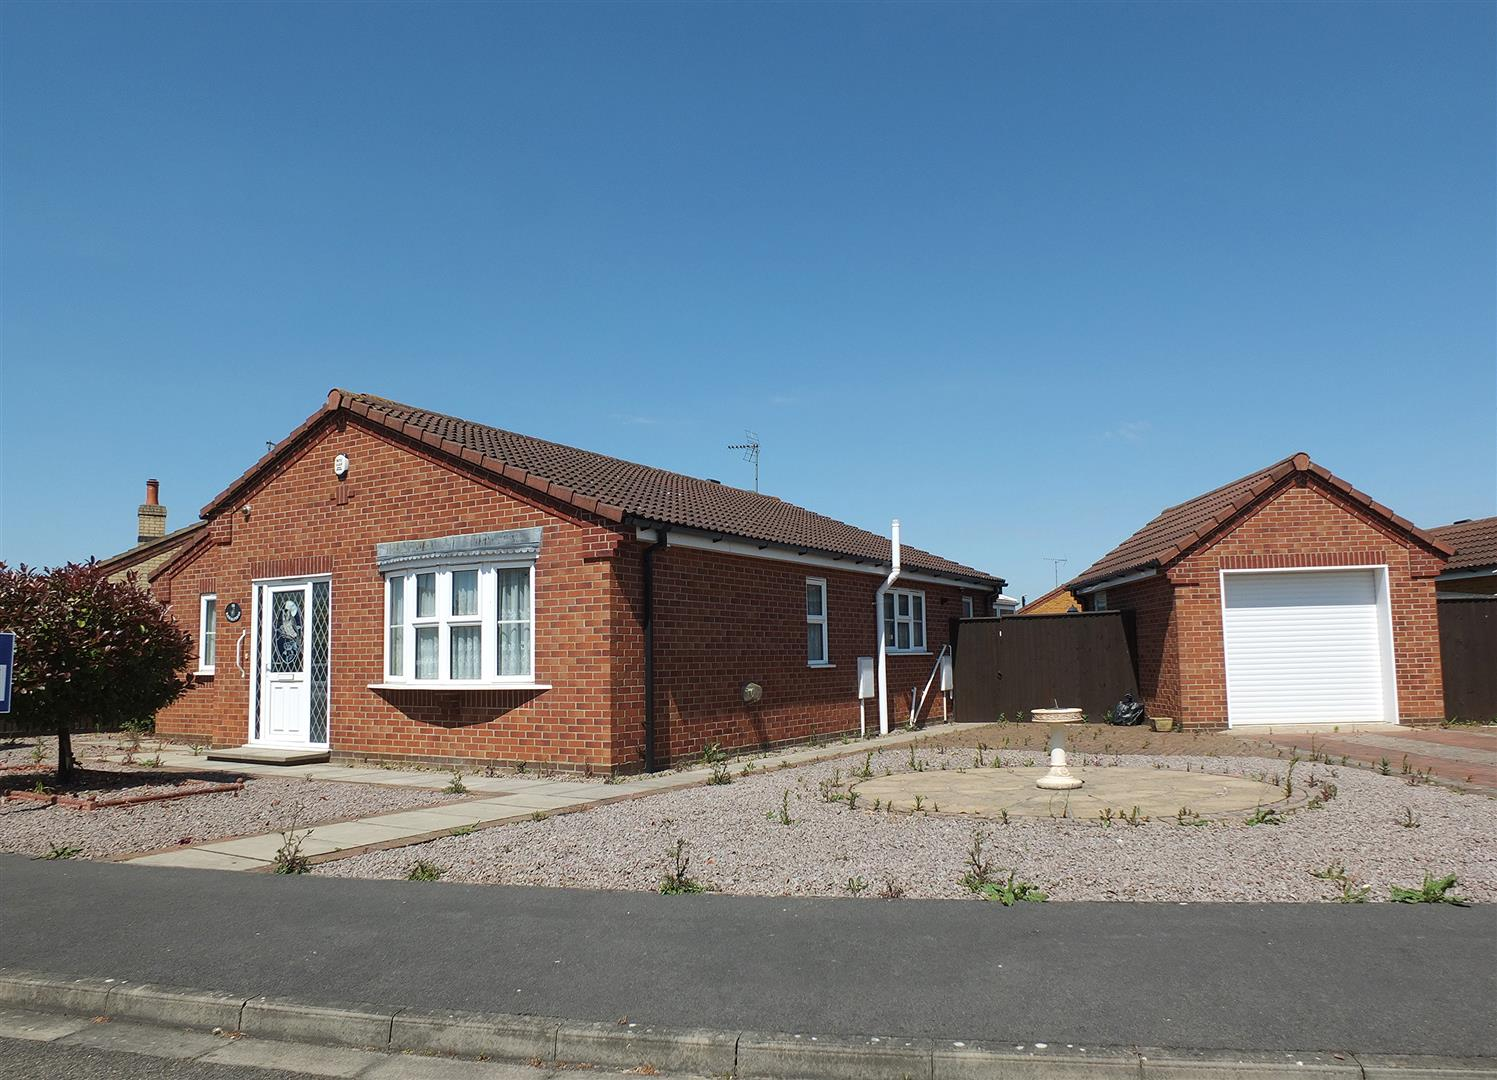 3 bed detached bungalow for sale in Long Sutton Spalding, PE12 9FR 0